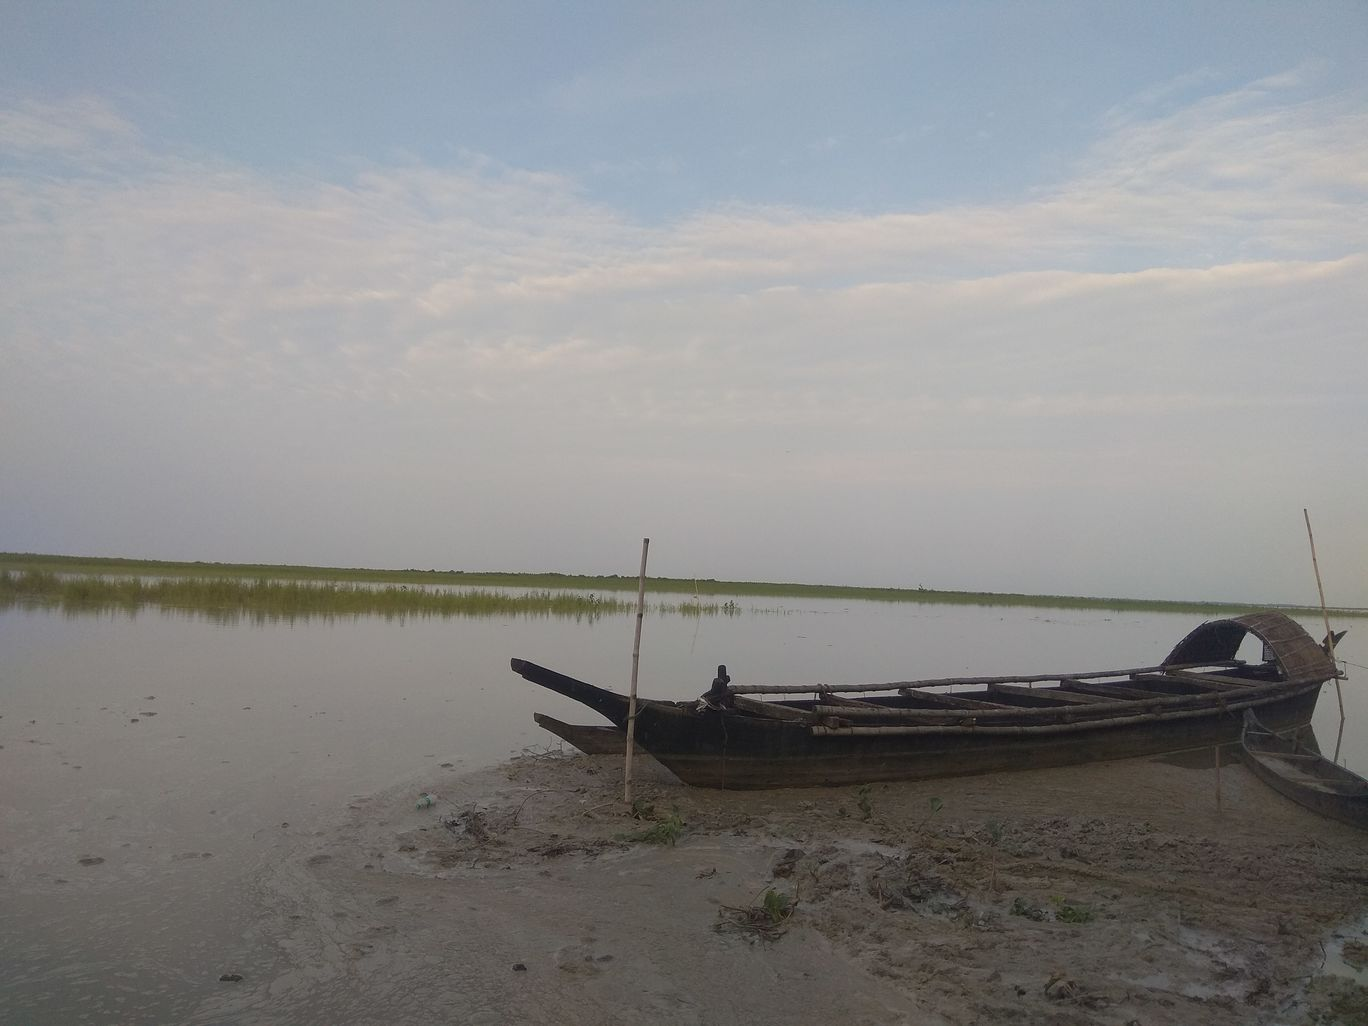 Photo of Our trip to MAJULI - WORLD'S LARGEST RIVER ISLAND | By Mahesh Maddala